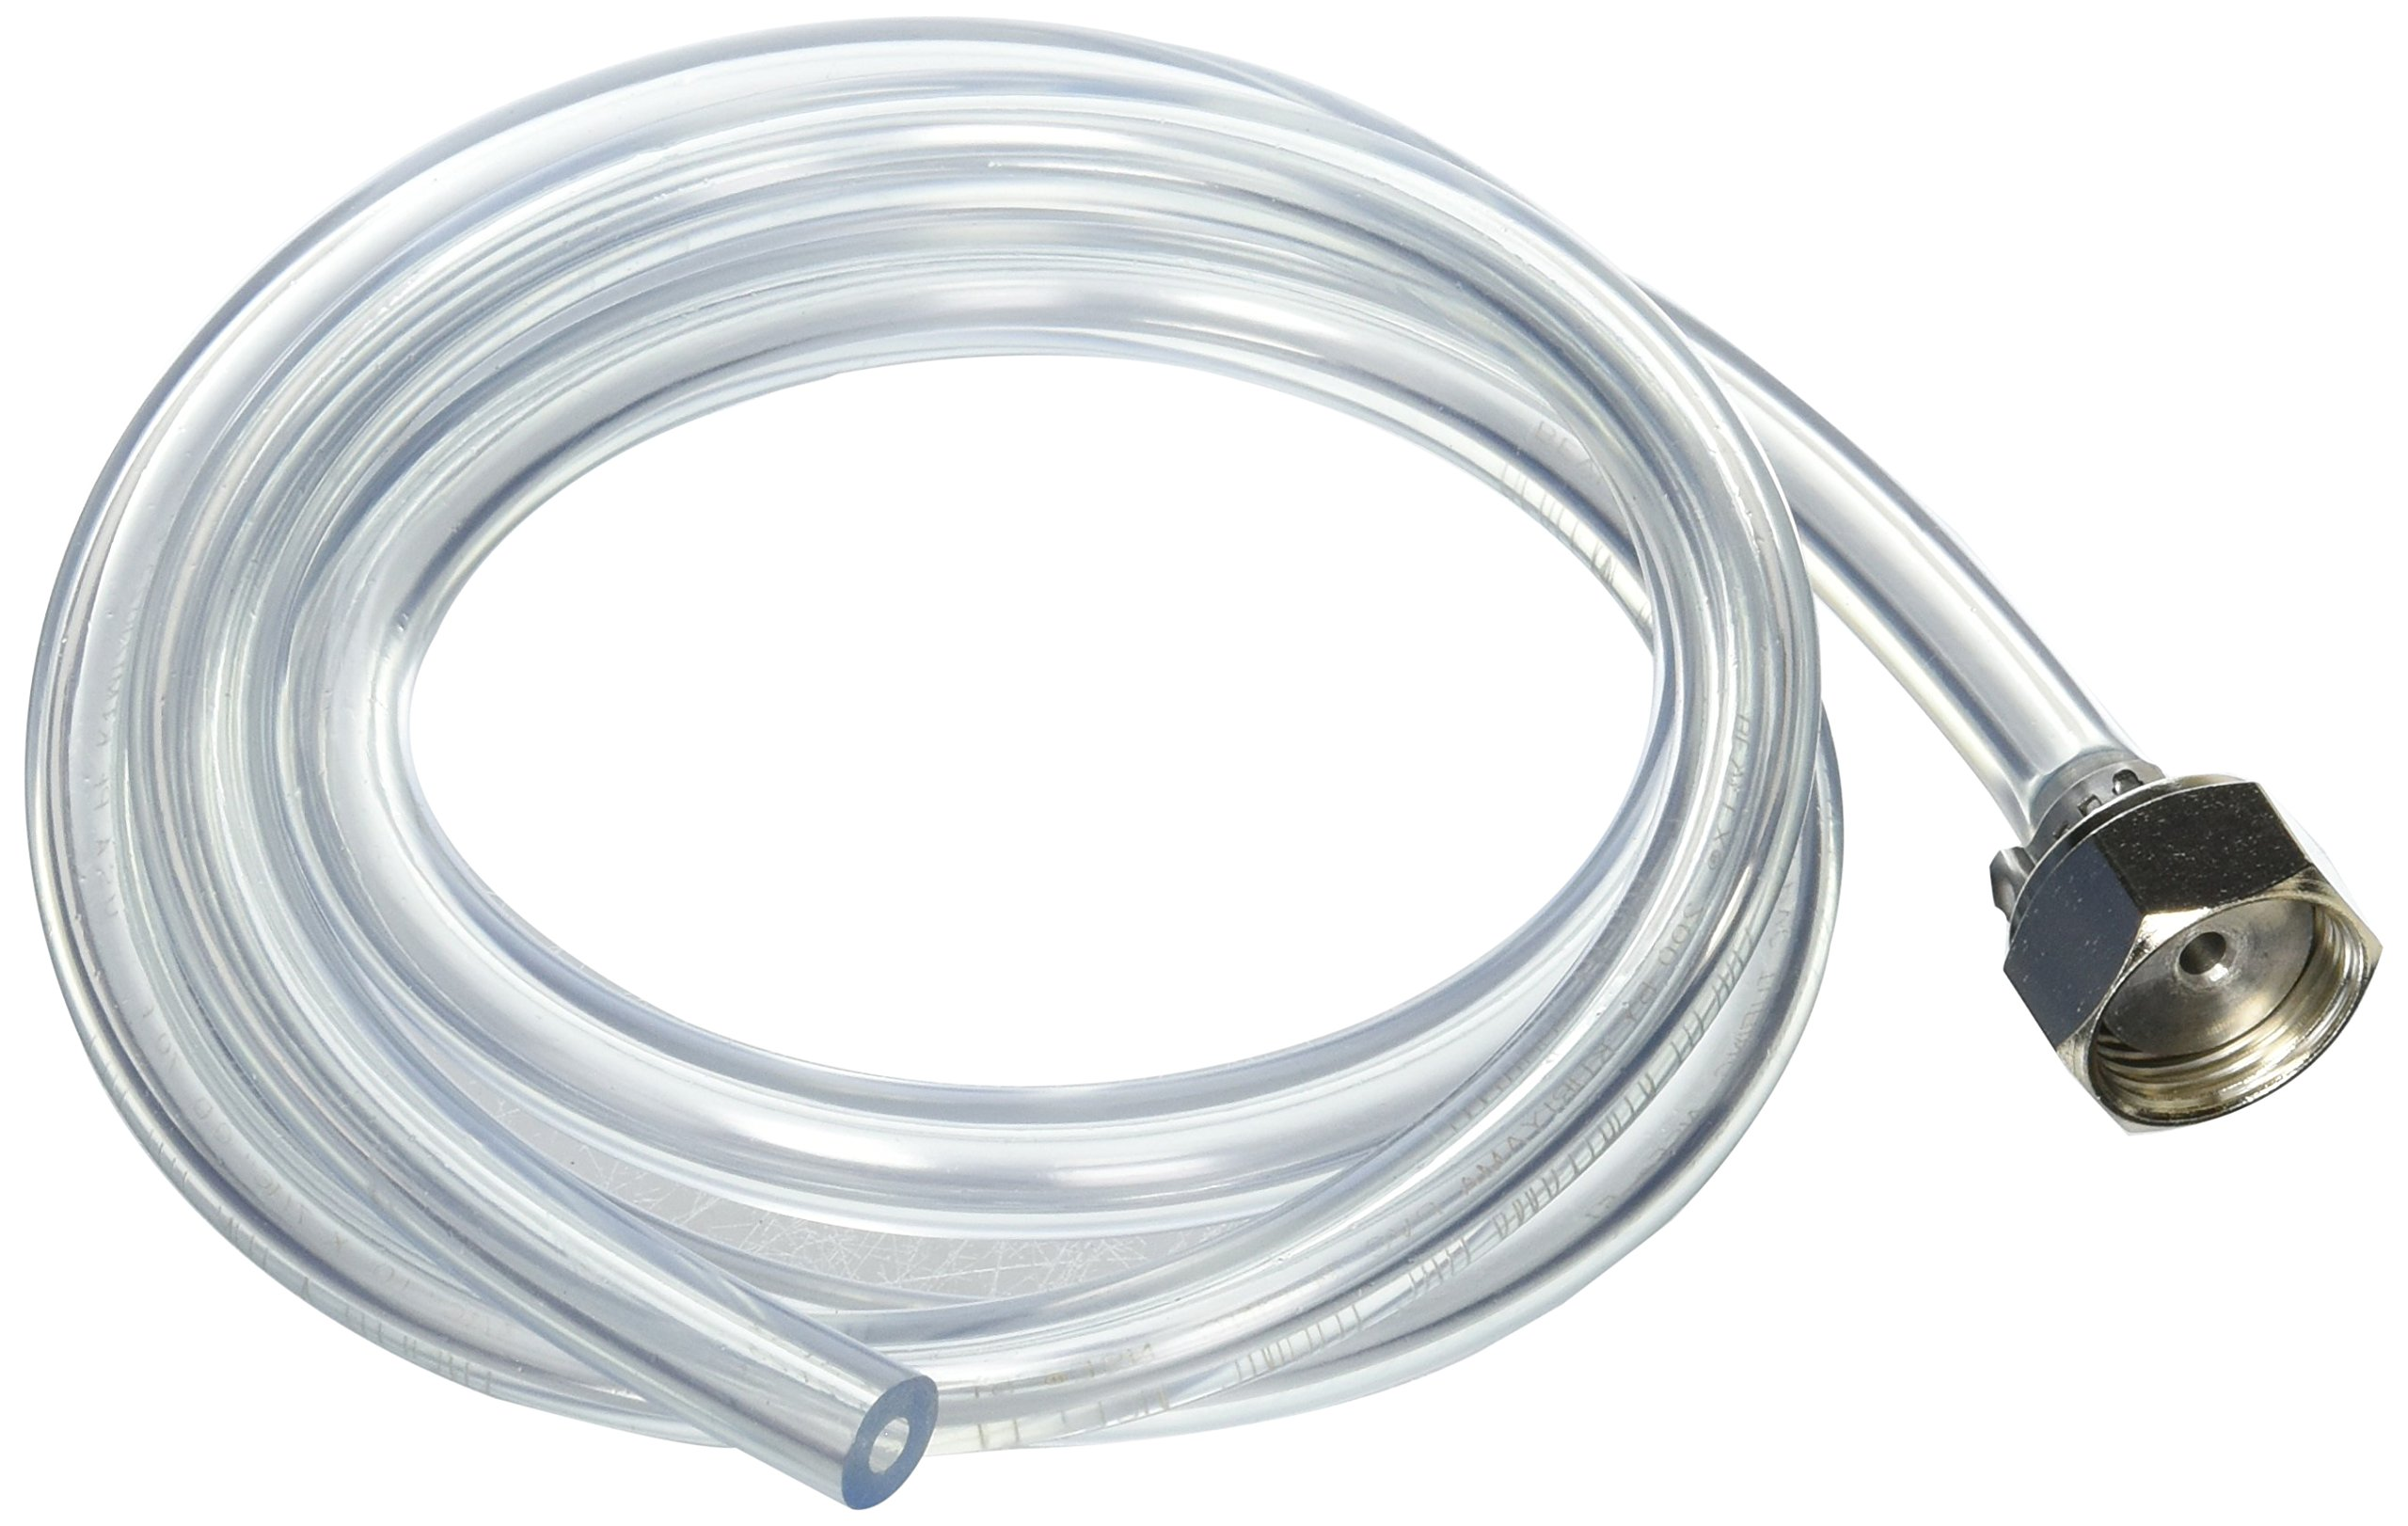 Bev Rite Beer Line with Stainless Steel Hex nut Connection (304 Grade SS), 3/16'' ID, 5' Clear Hose by Bev Rite